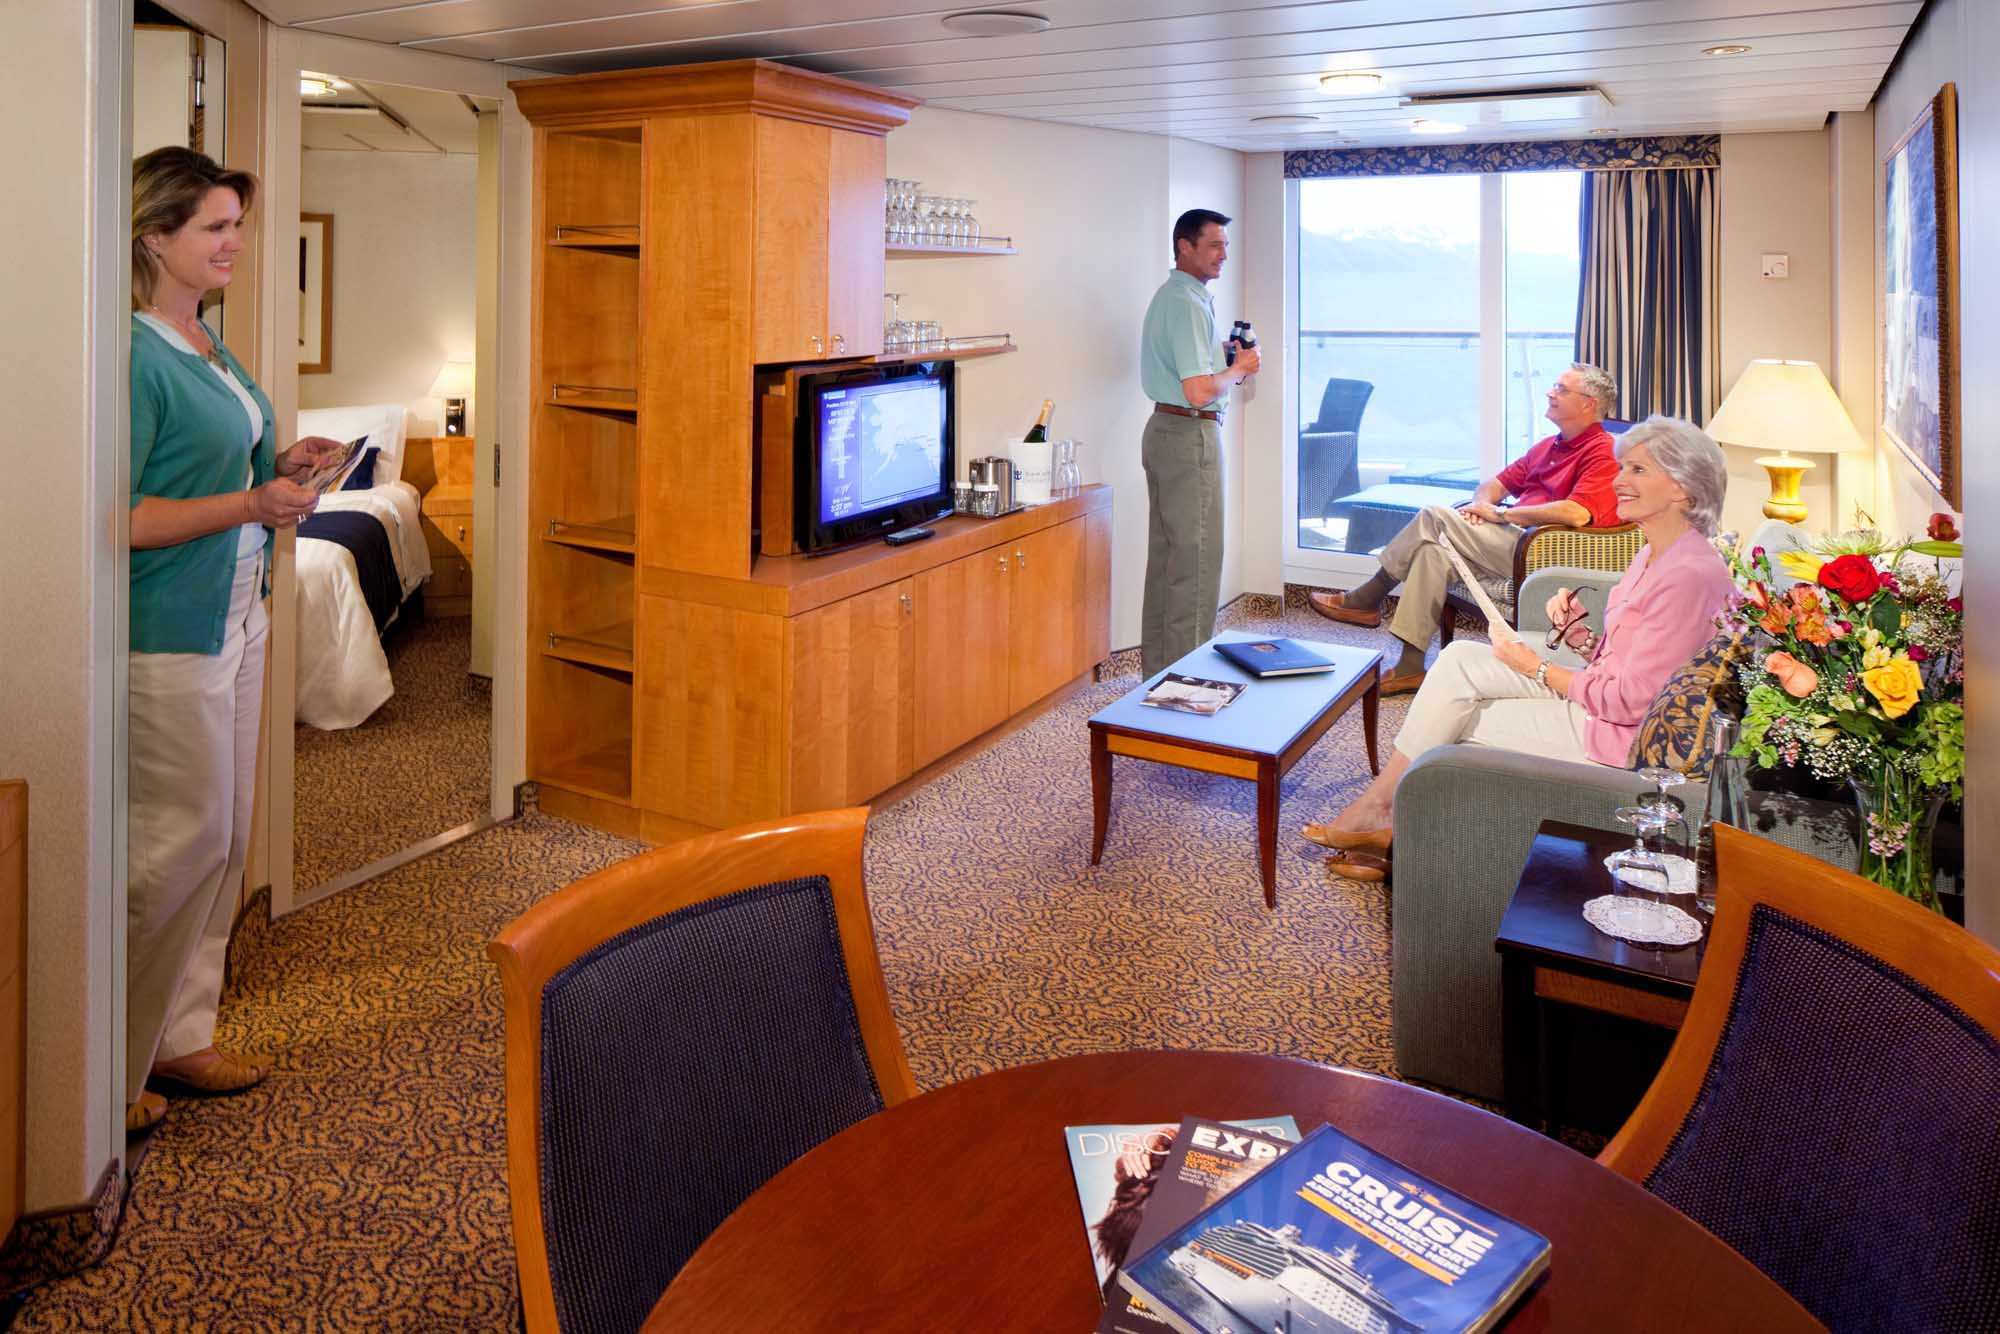 The Family Suite aboard Radiance of the Seas offers guests two bedrooms, two bathrooms and a separate living area and sofa bed.